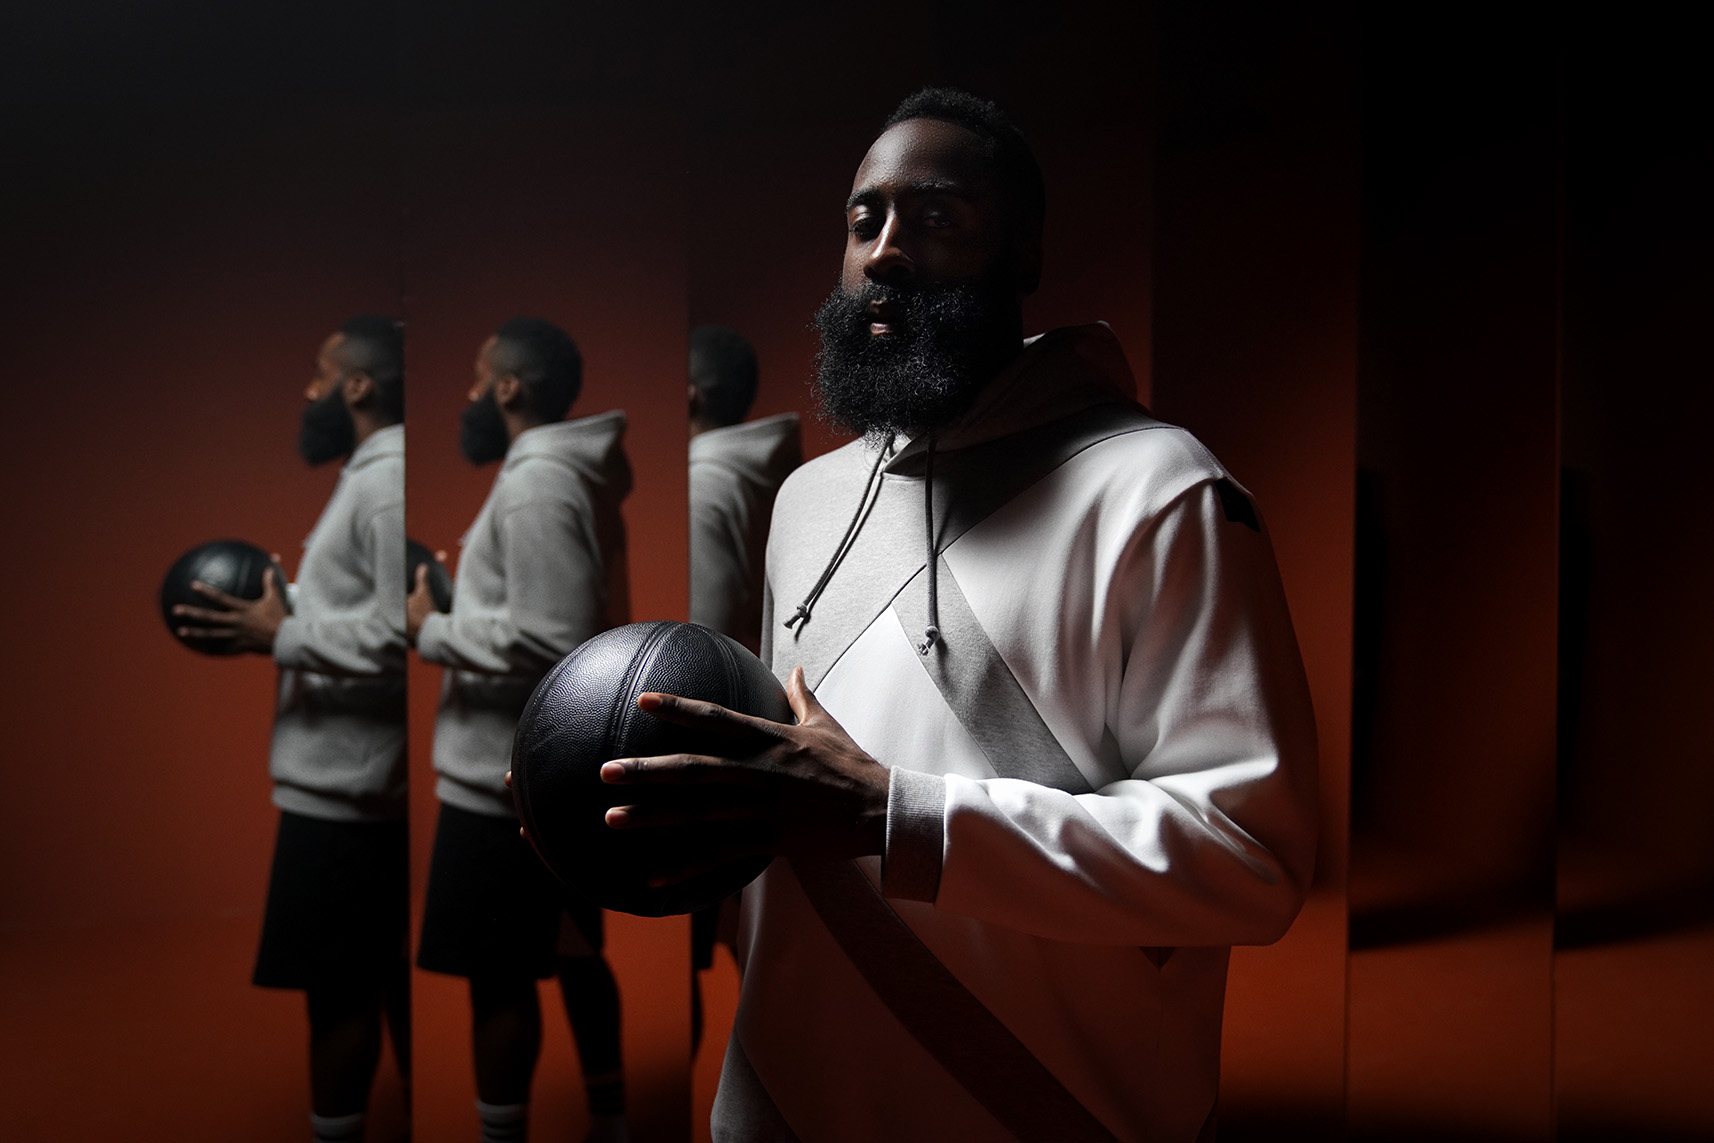 Adidas Originals : Original is never finished, la barbe de